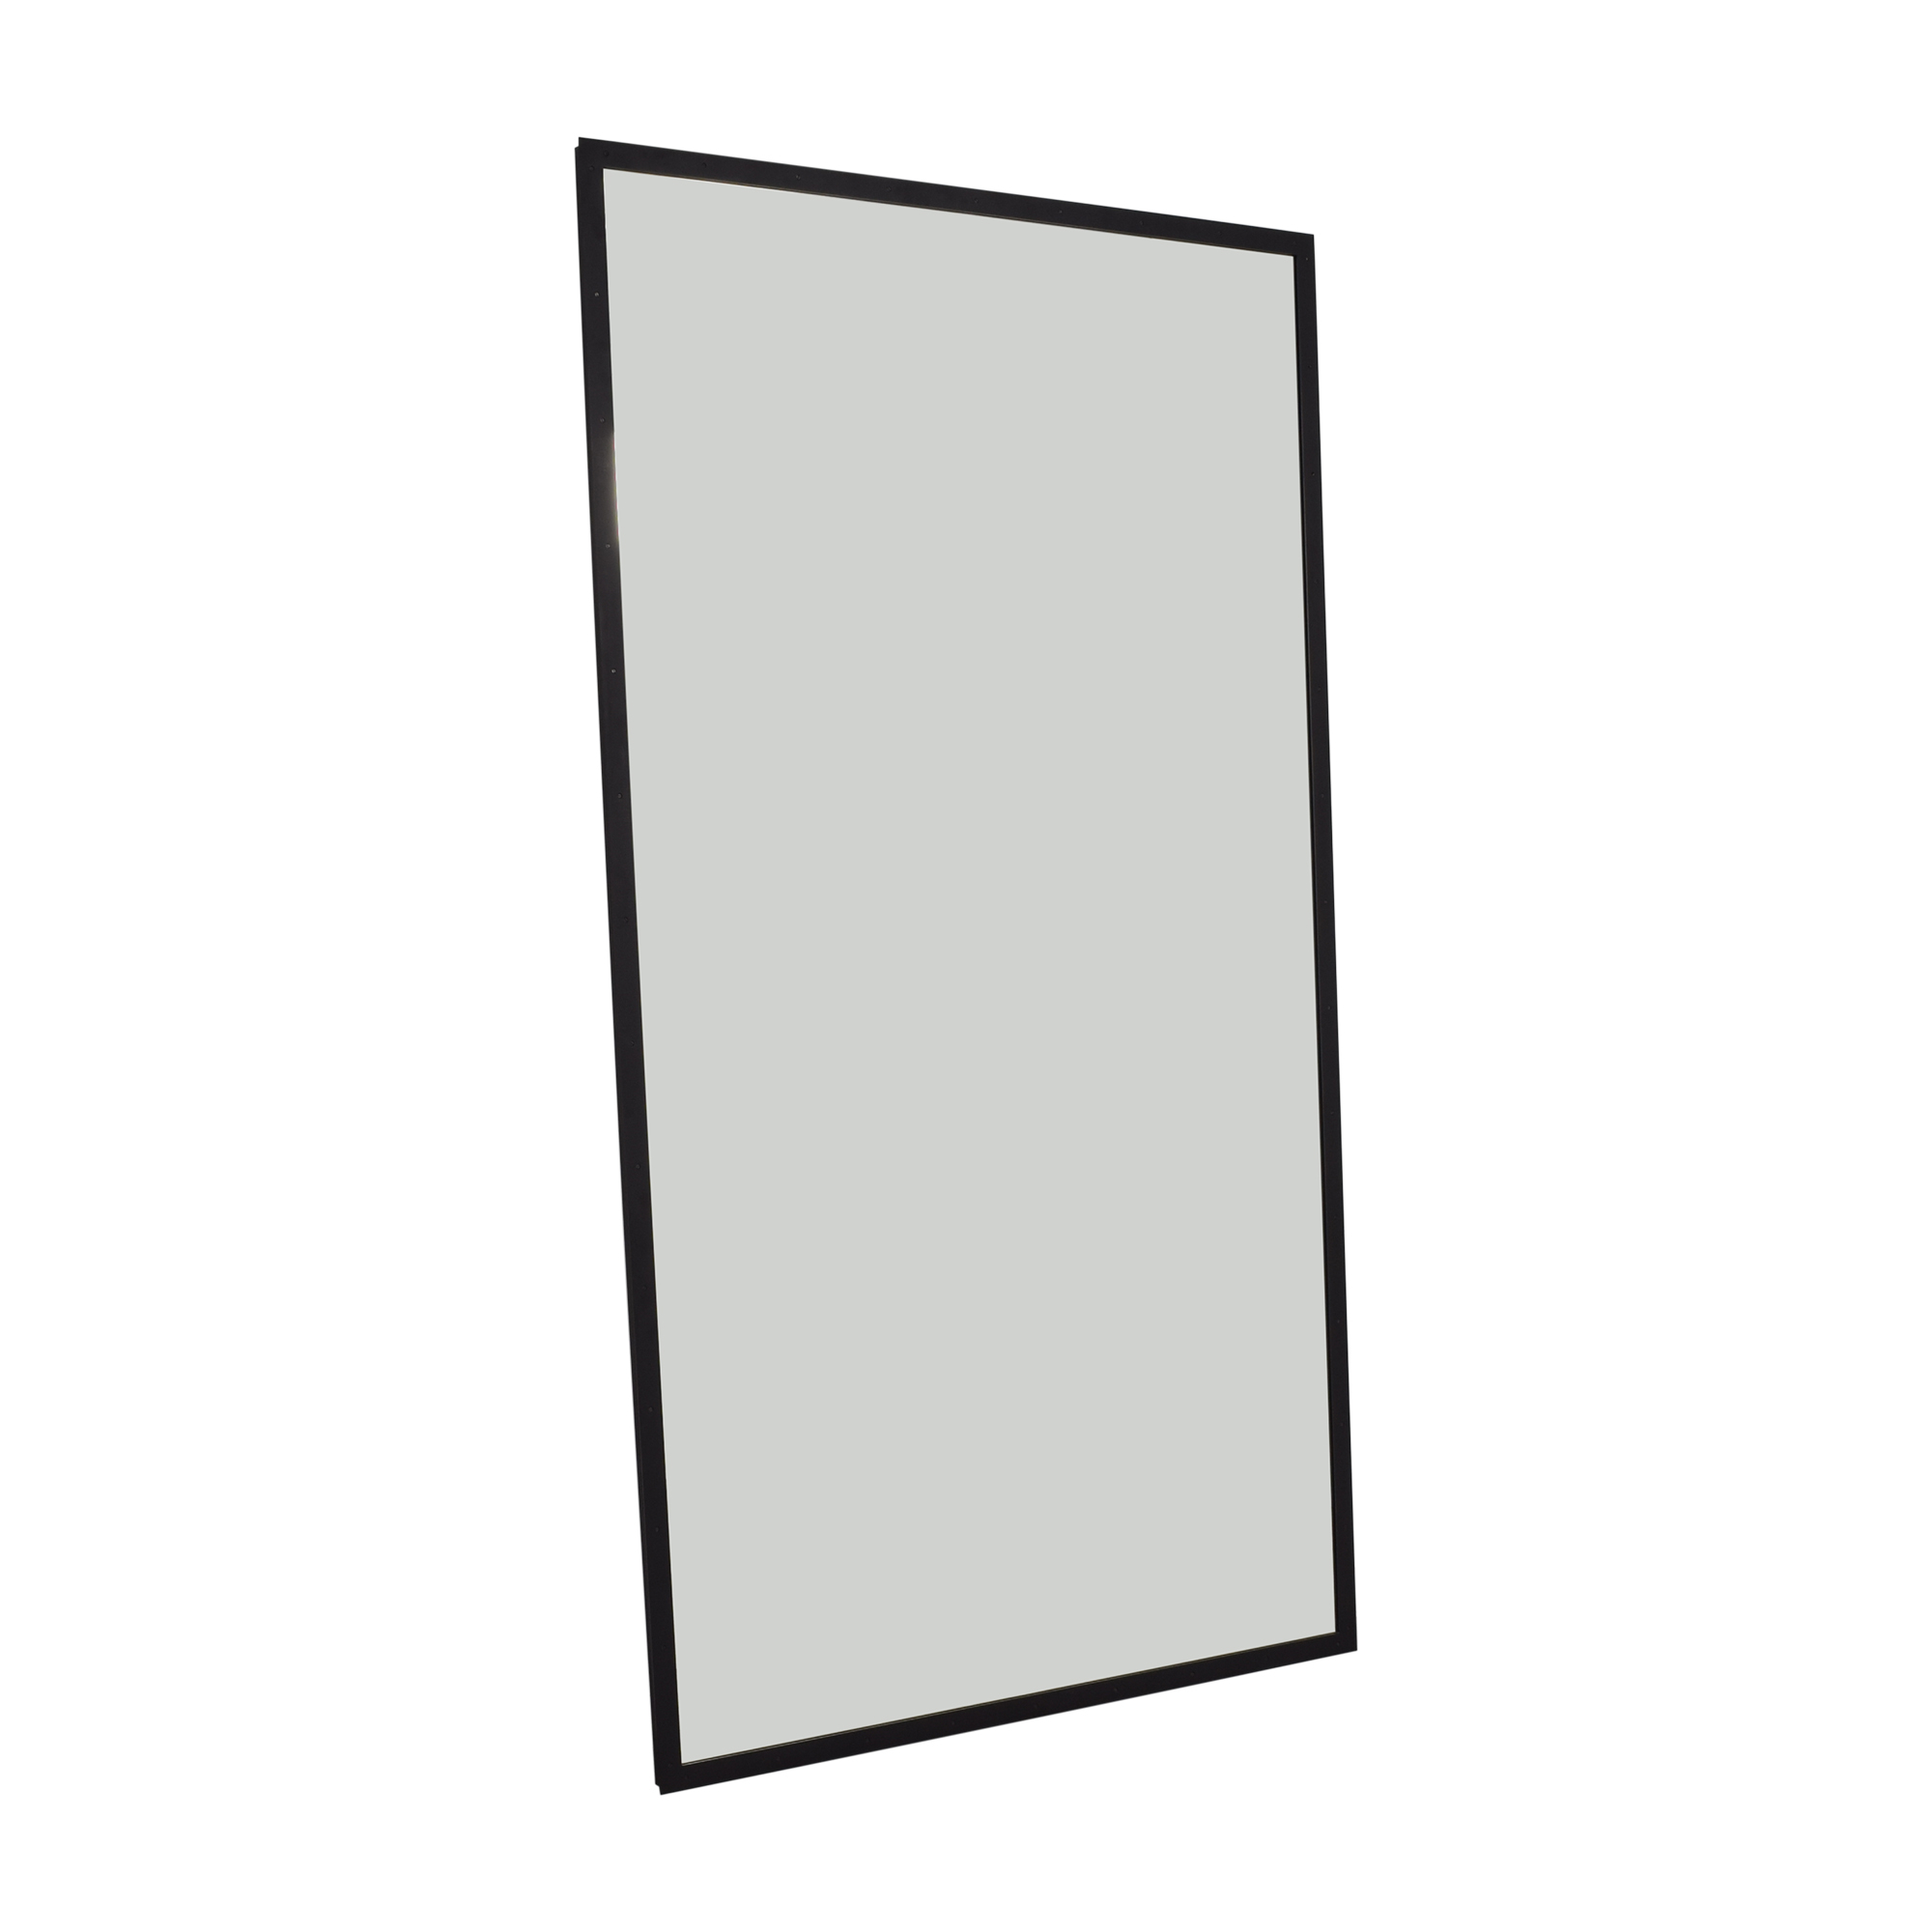 Restoration Hardware Restoration Hardware Metal Framed Leaner Mirror ct